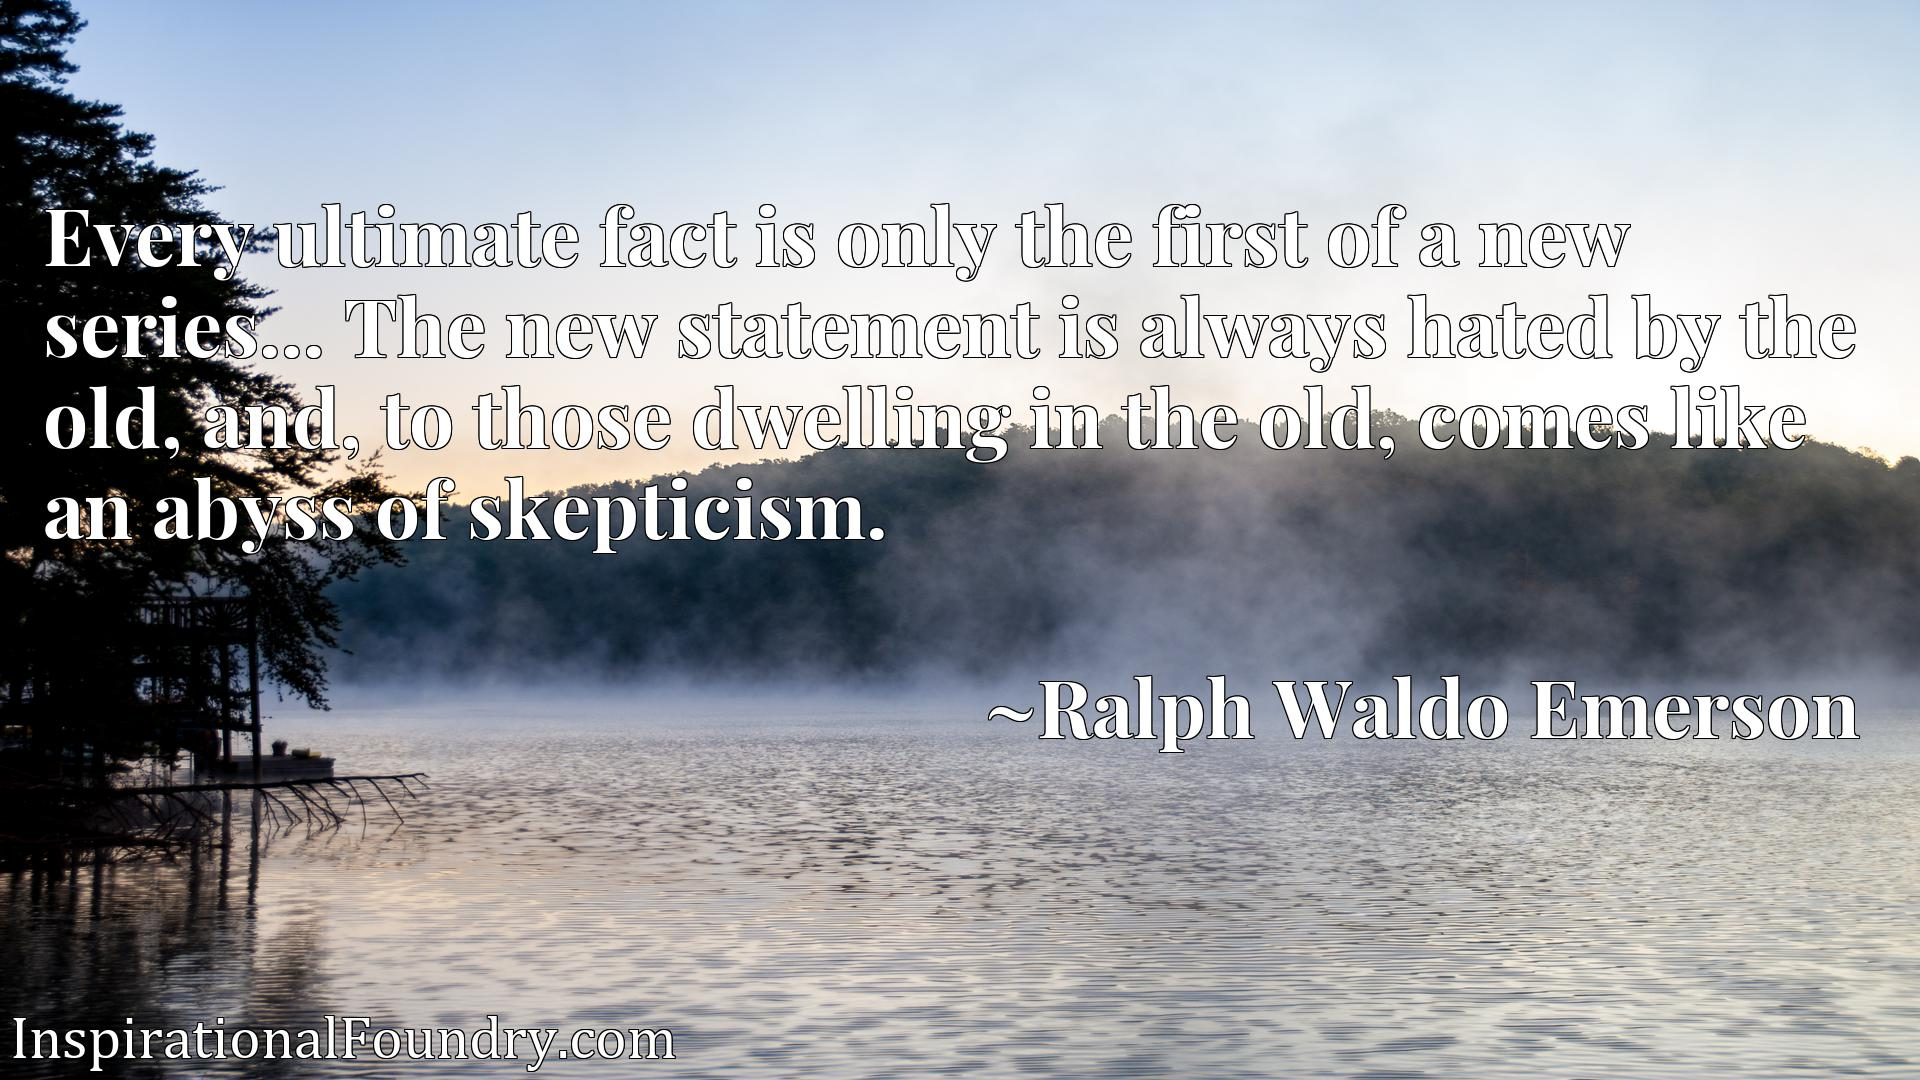 Every ultimate fact is only the first of a new series... The new statement is always hated by the old, and, to those dwelling in the old, comes like an abyss of skepticism.